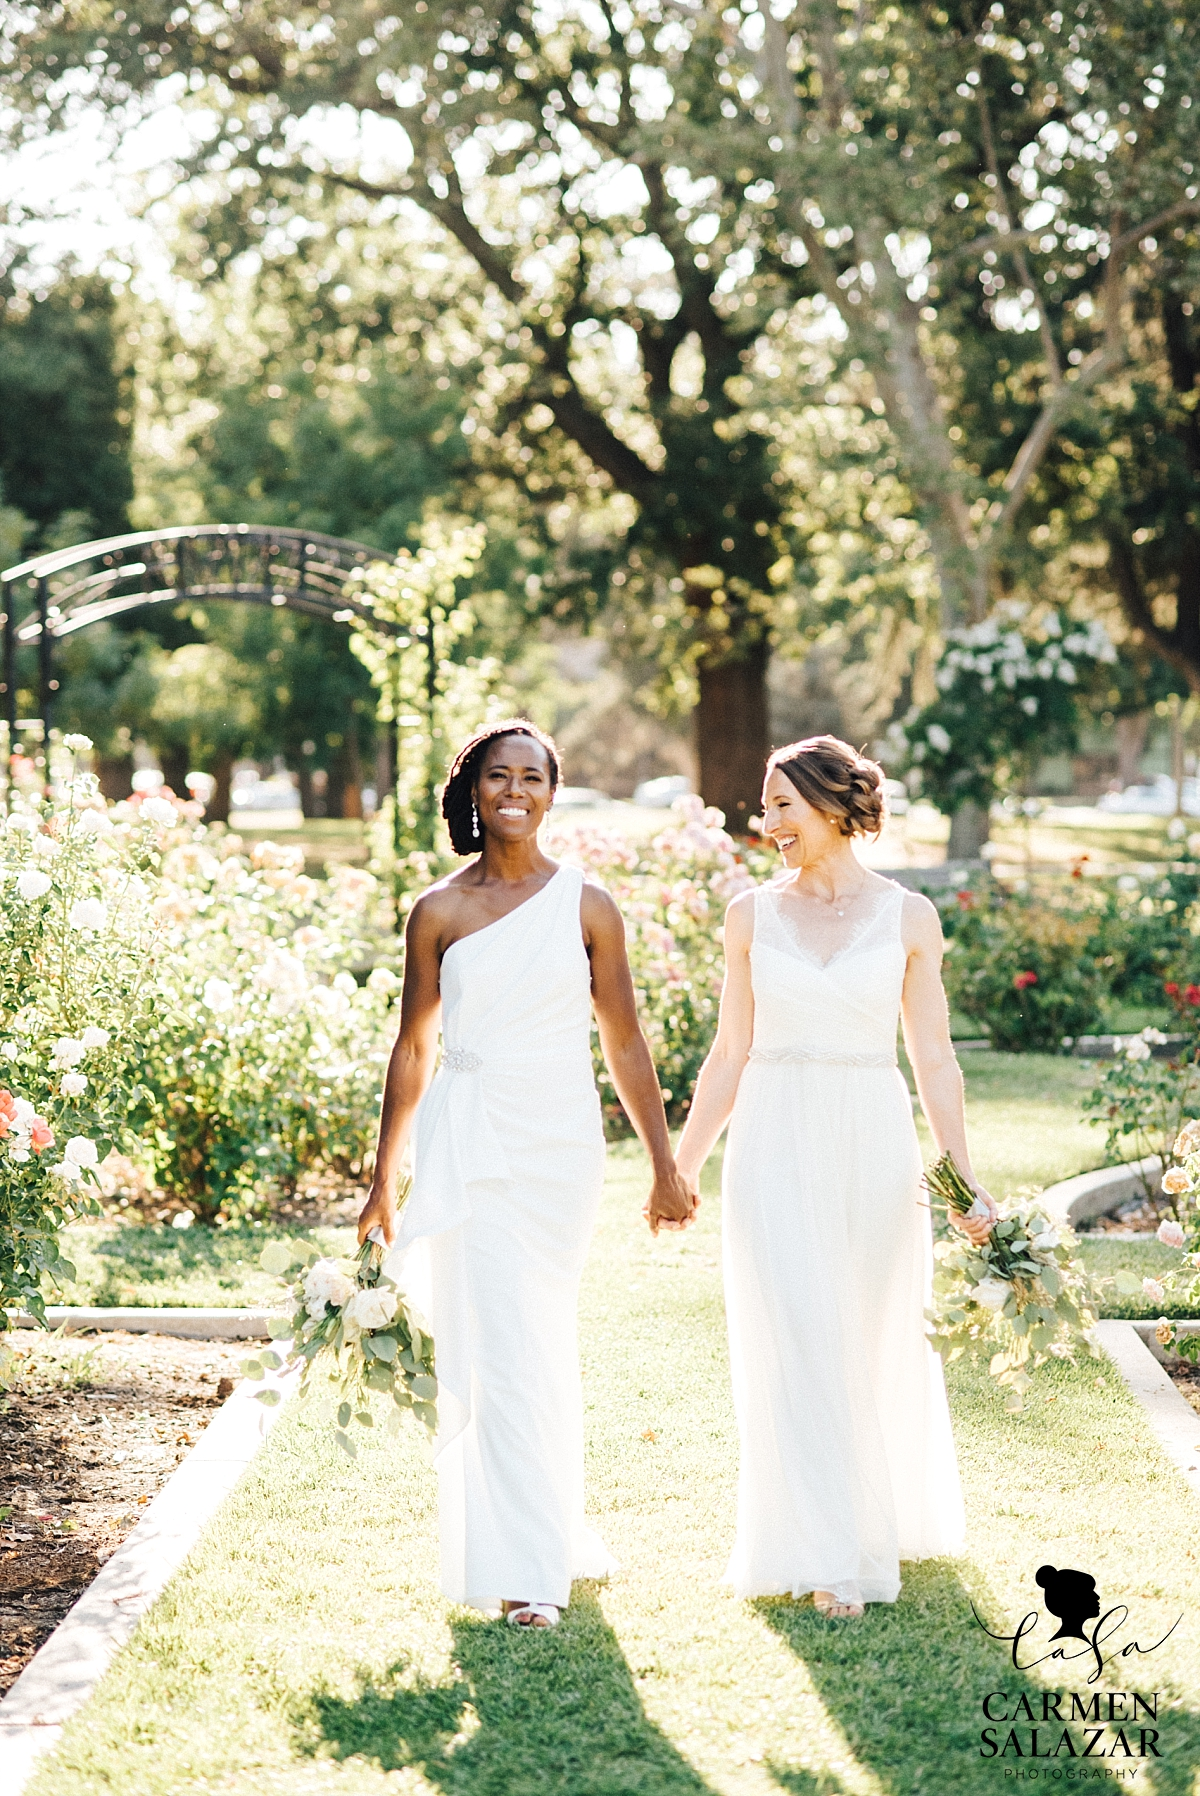 Glowing brides in Rose Garden wedding - Carmen Salazar